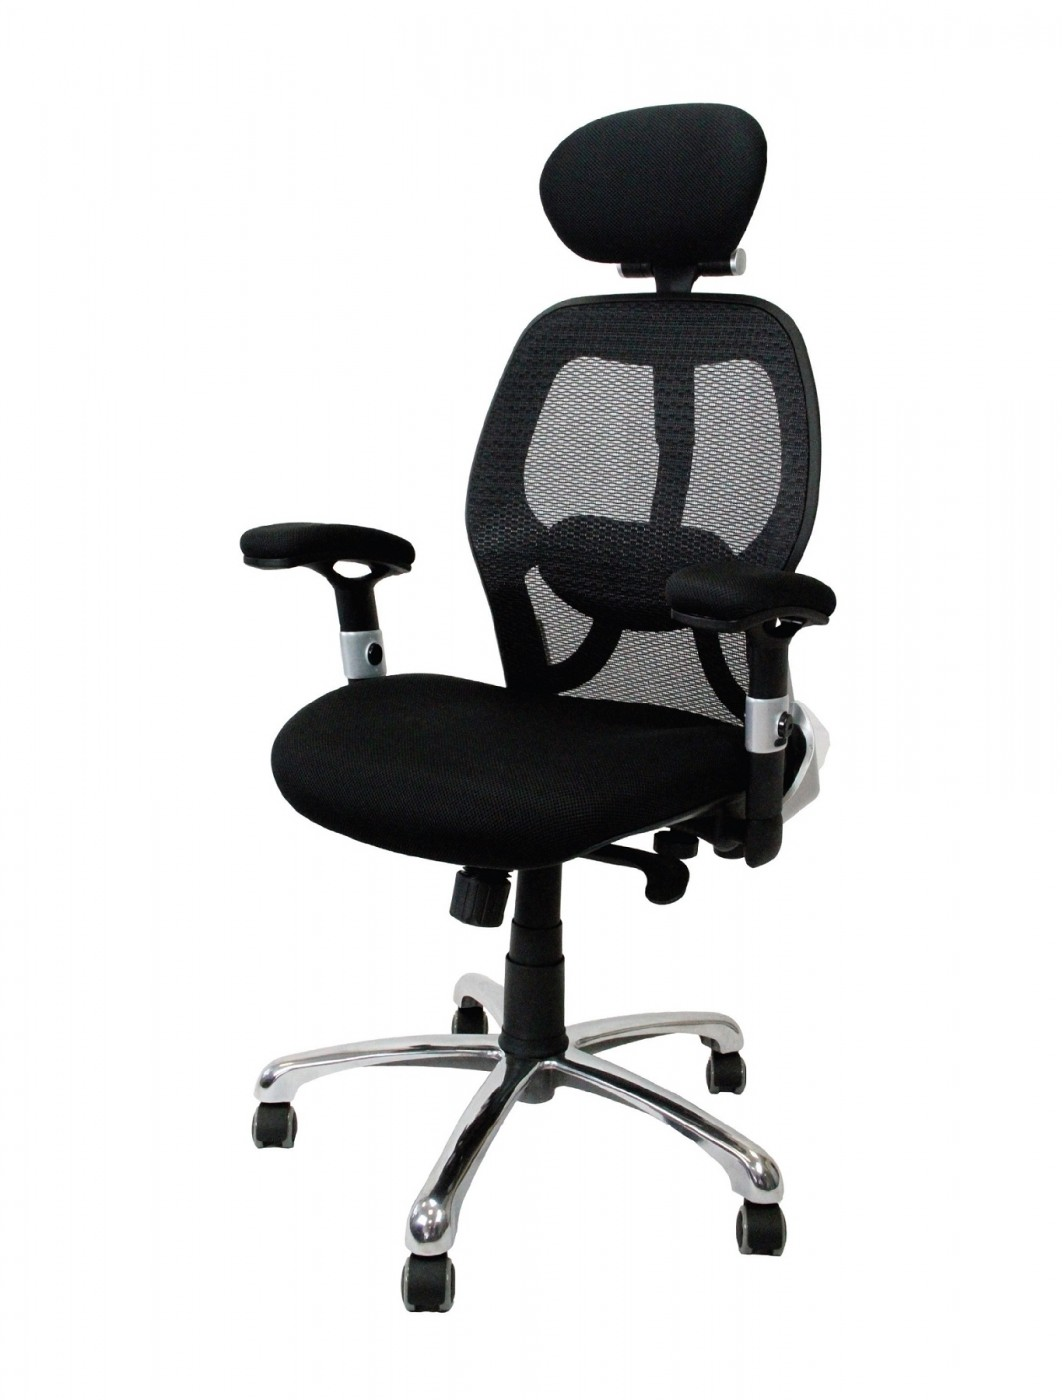 Ergonomic Mesh Chair Ergo 24 Hour Luxury Mesh Back Executive Chair Ergo Ktag M